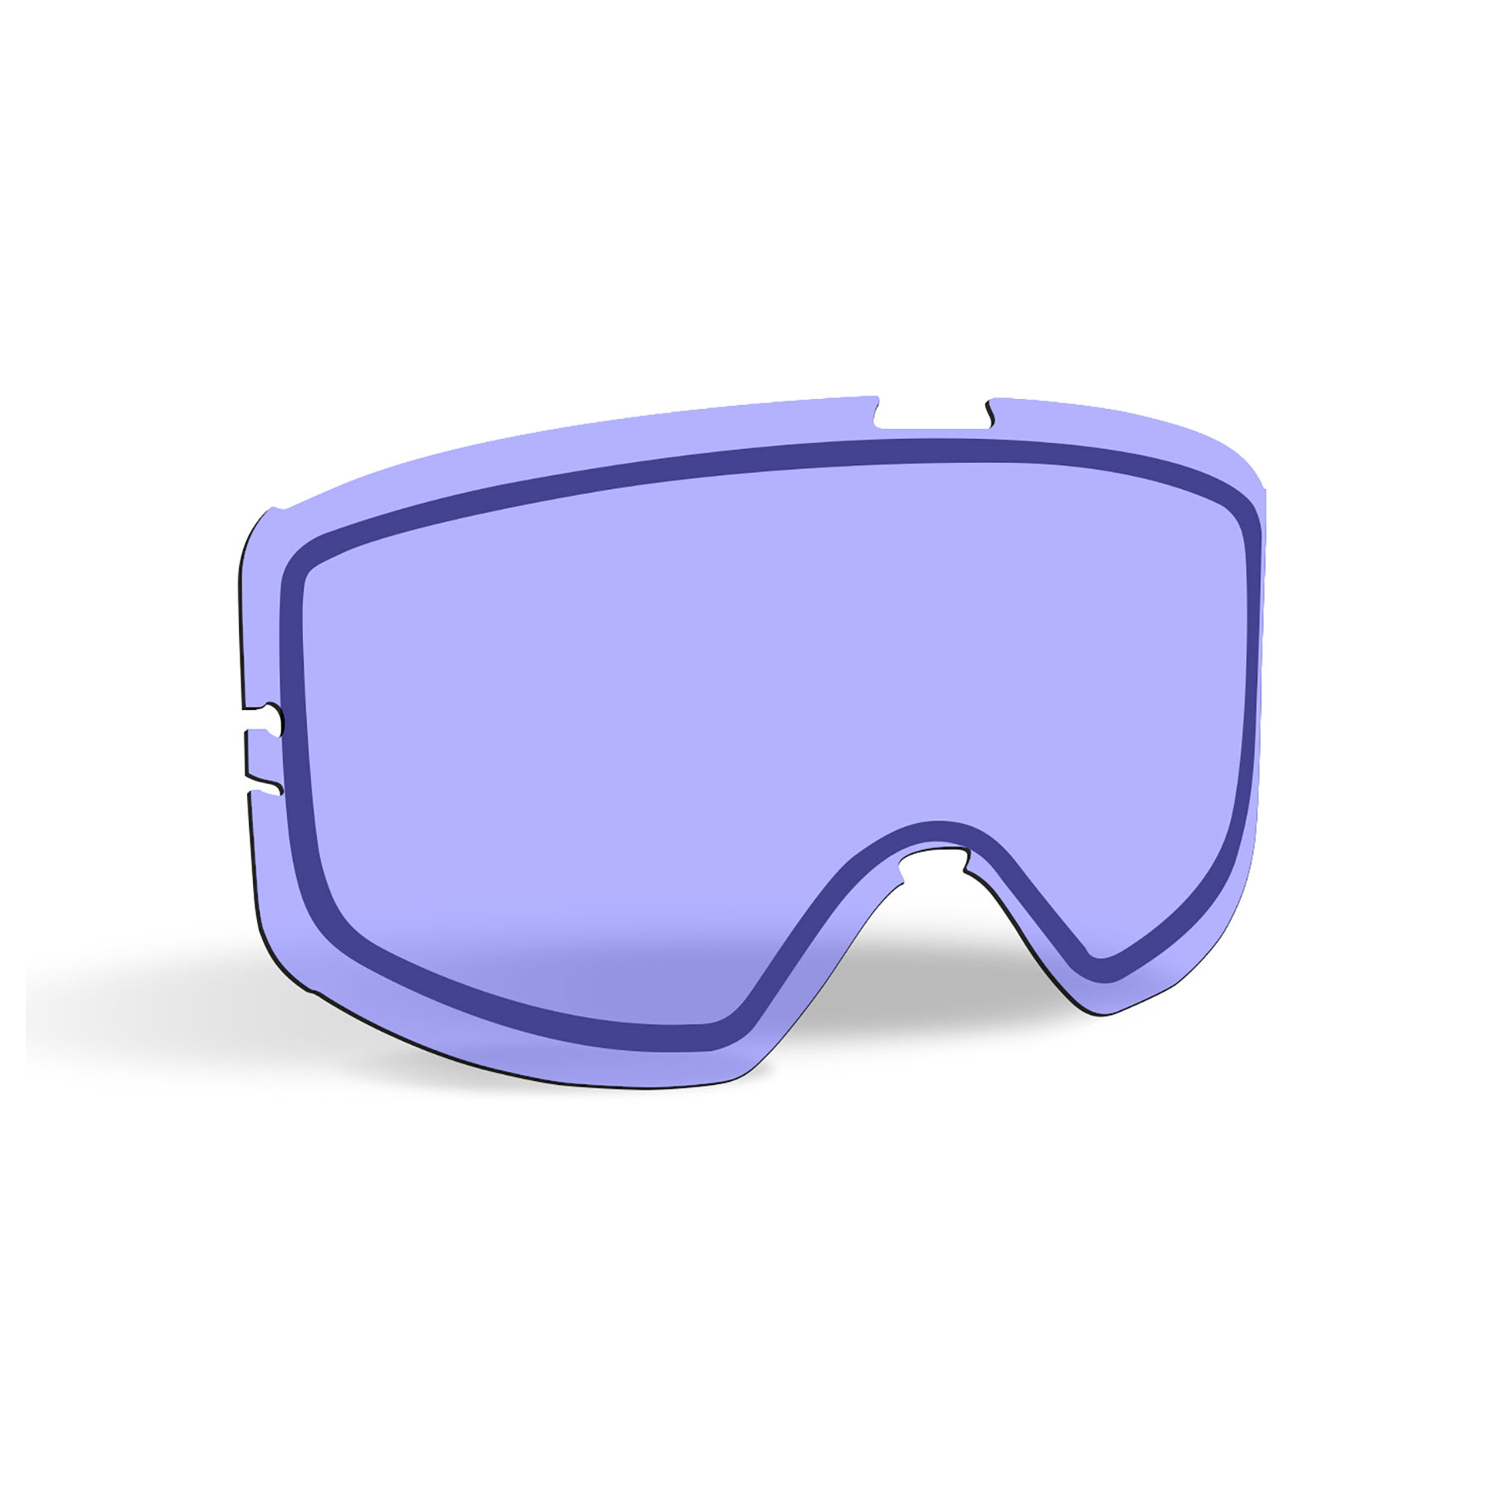 509® Kingpin Dirt Adult Goggle Replacement Lens with Quick-Change Technology, Blue